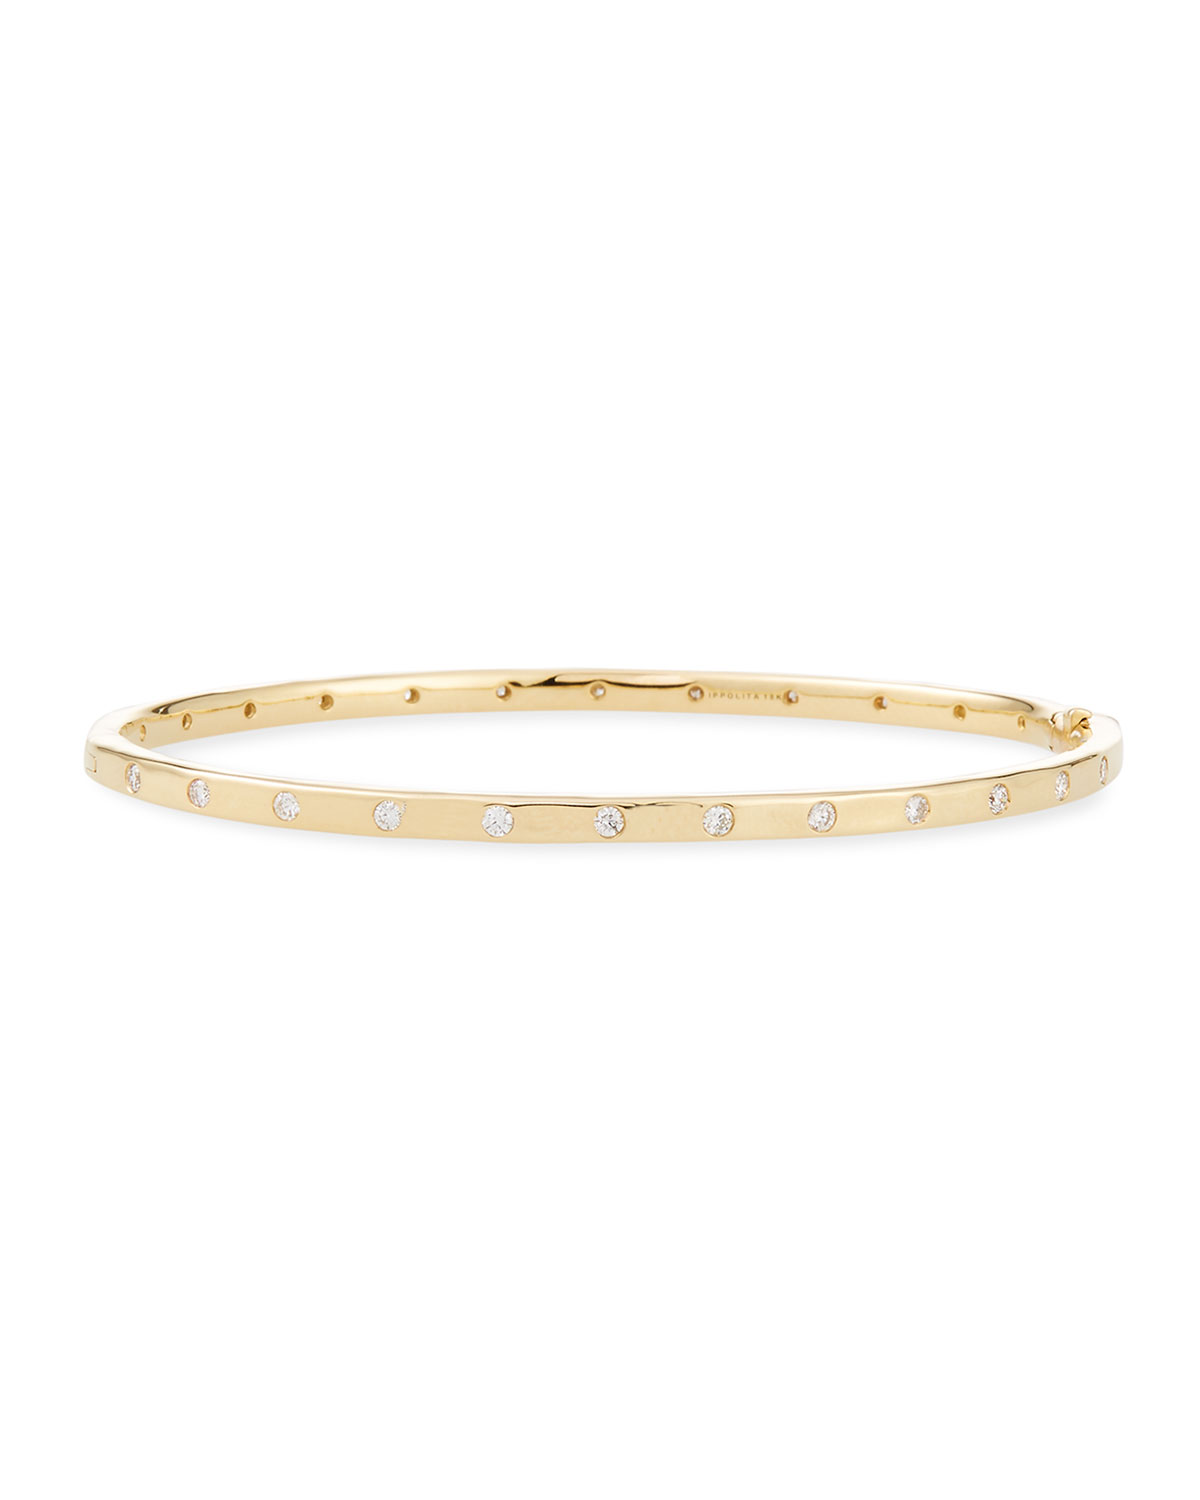 Ippolita Accessories STARDUST 18K ALL-AROUND DIAMOND BRACELET